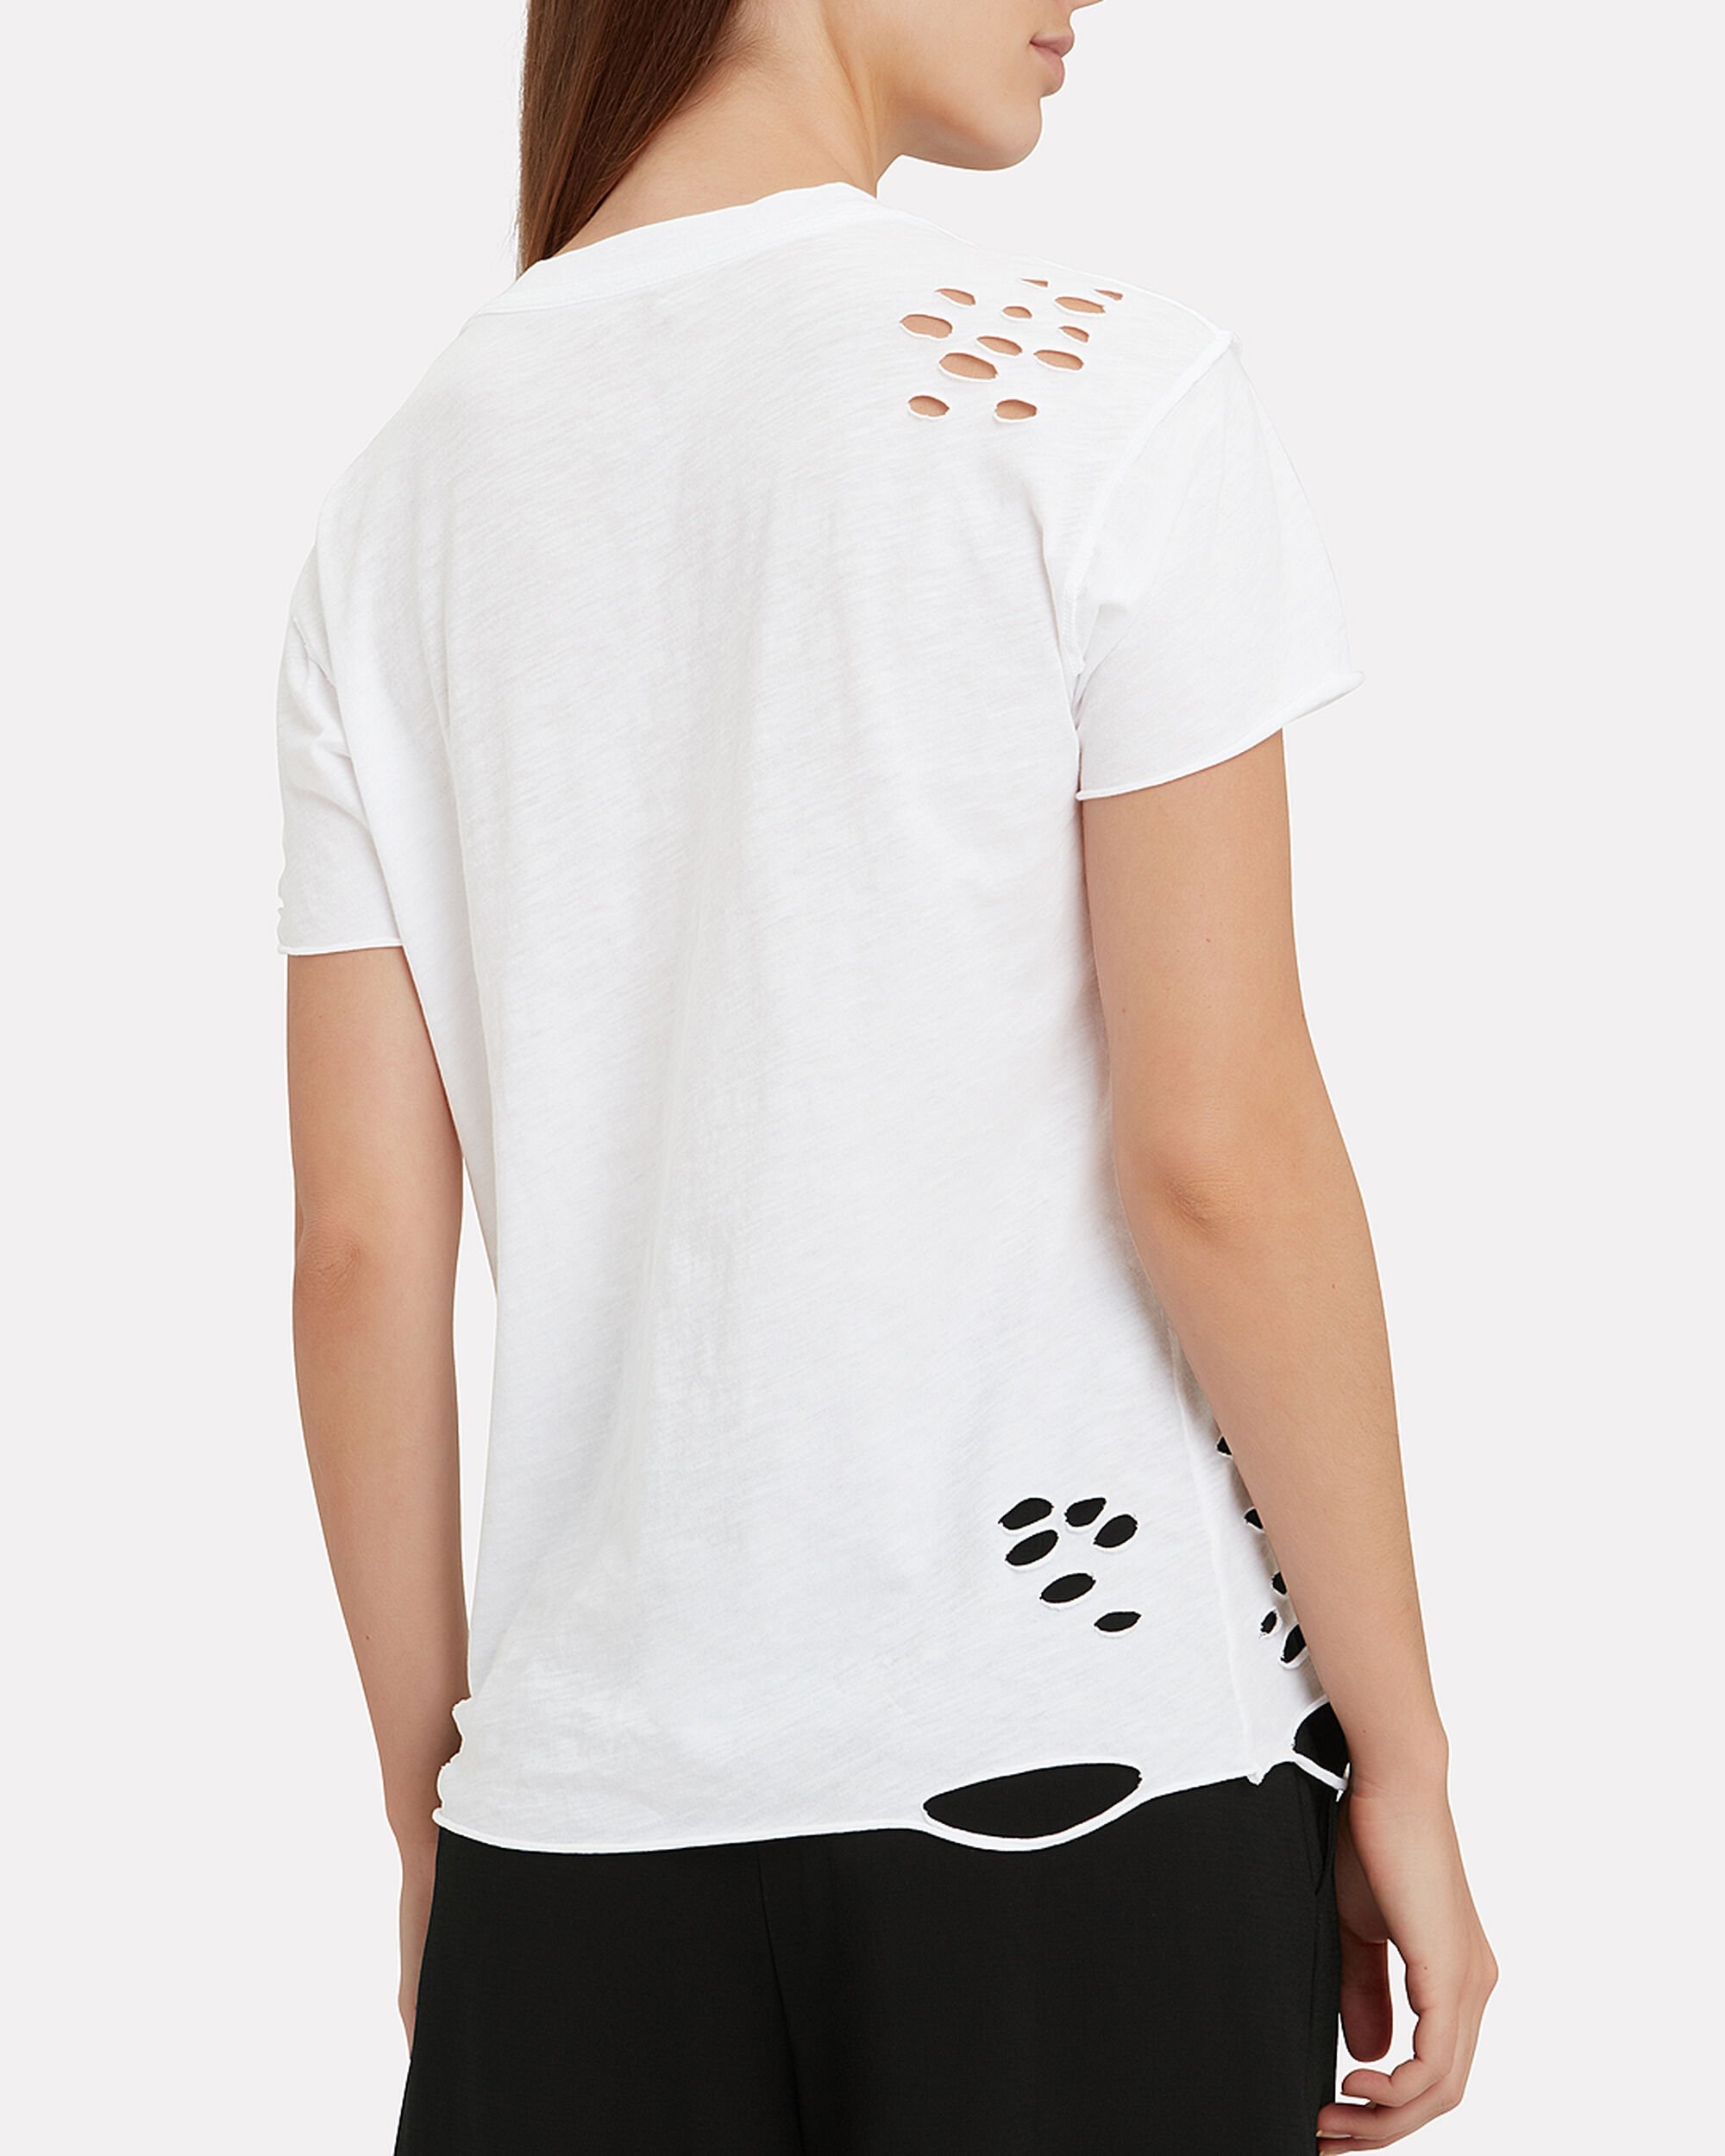 Destroyed White T-Shirt, WHITE, hi-res